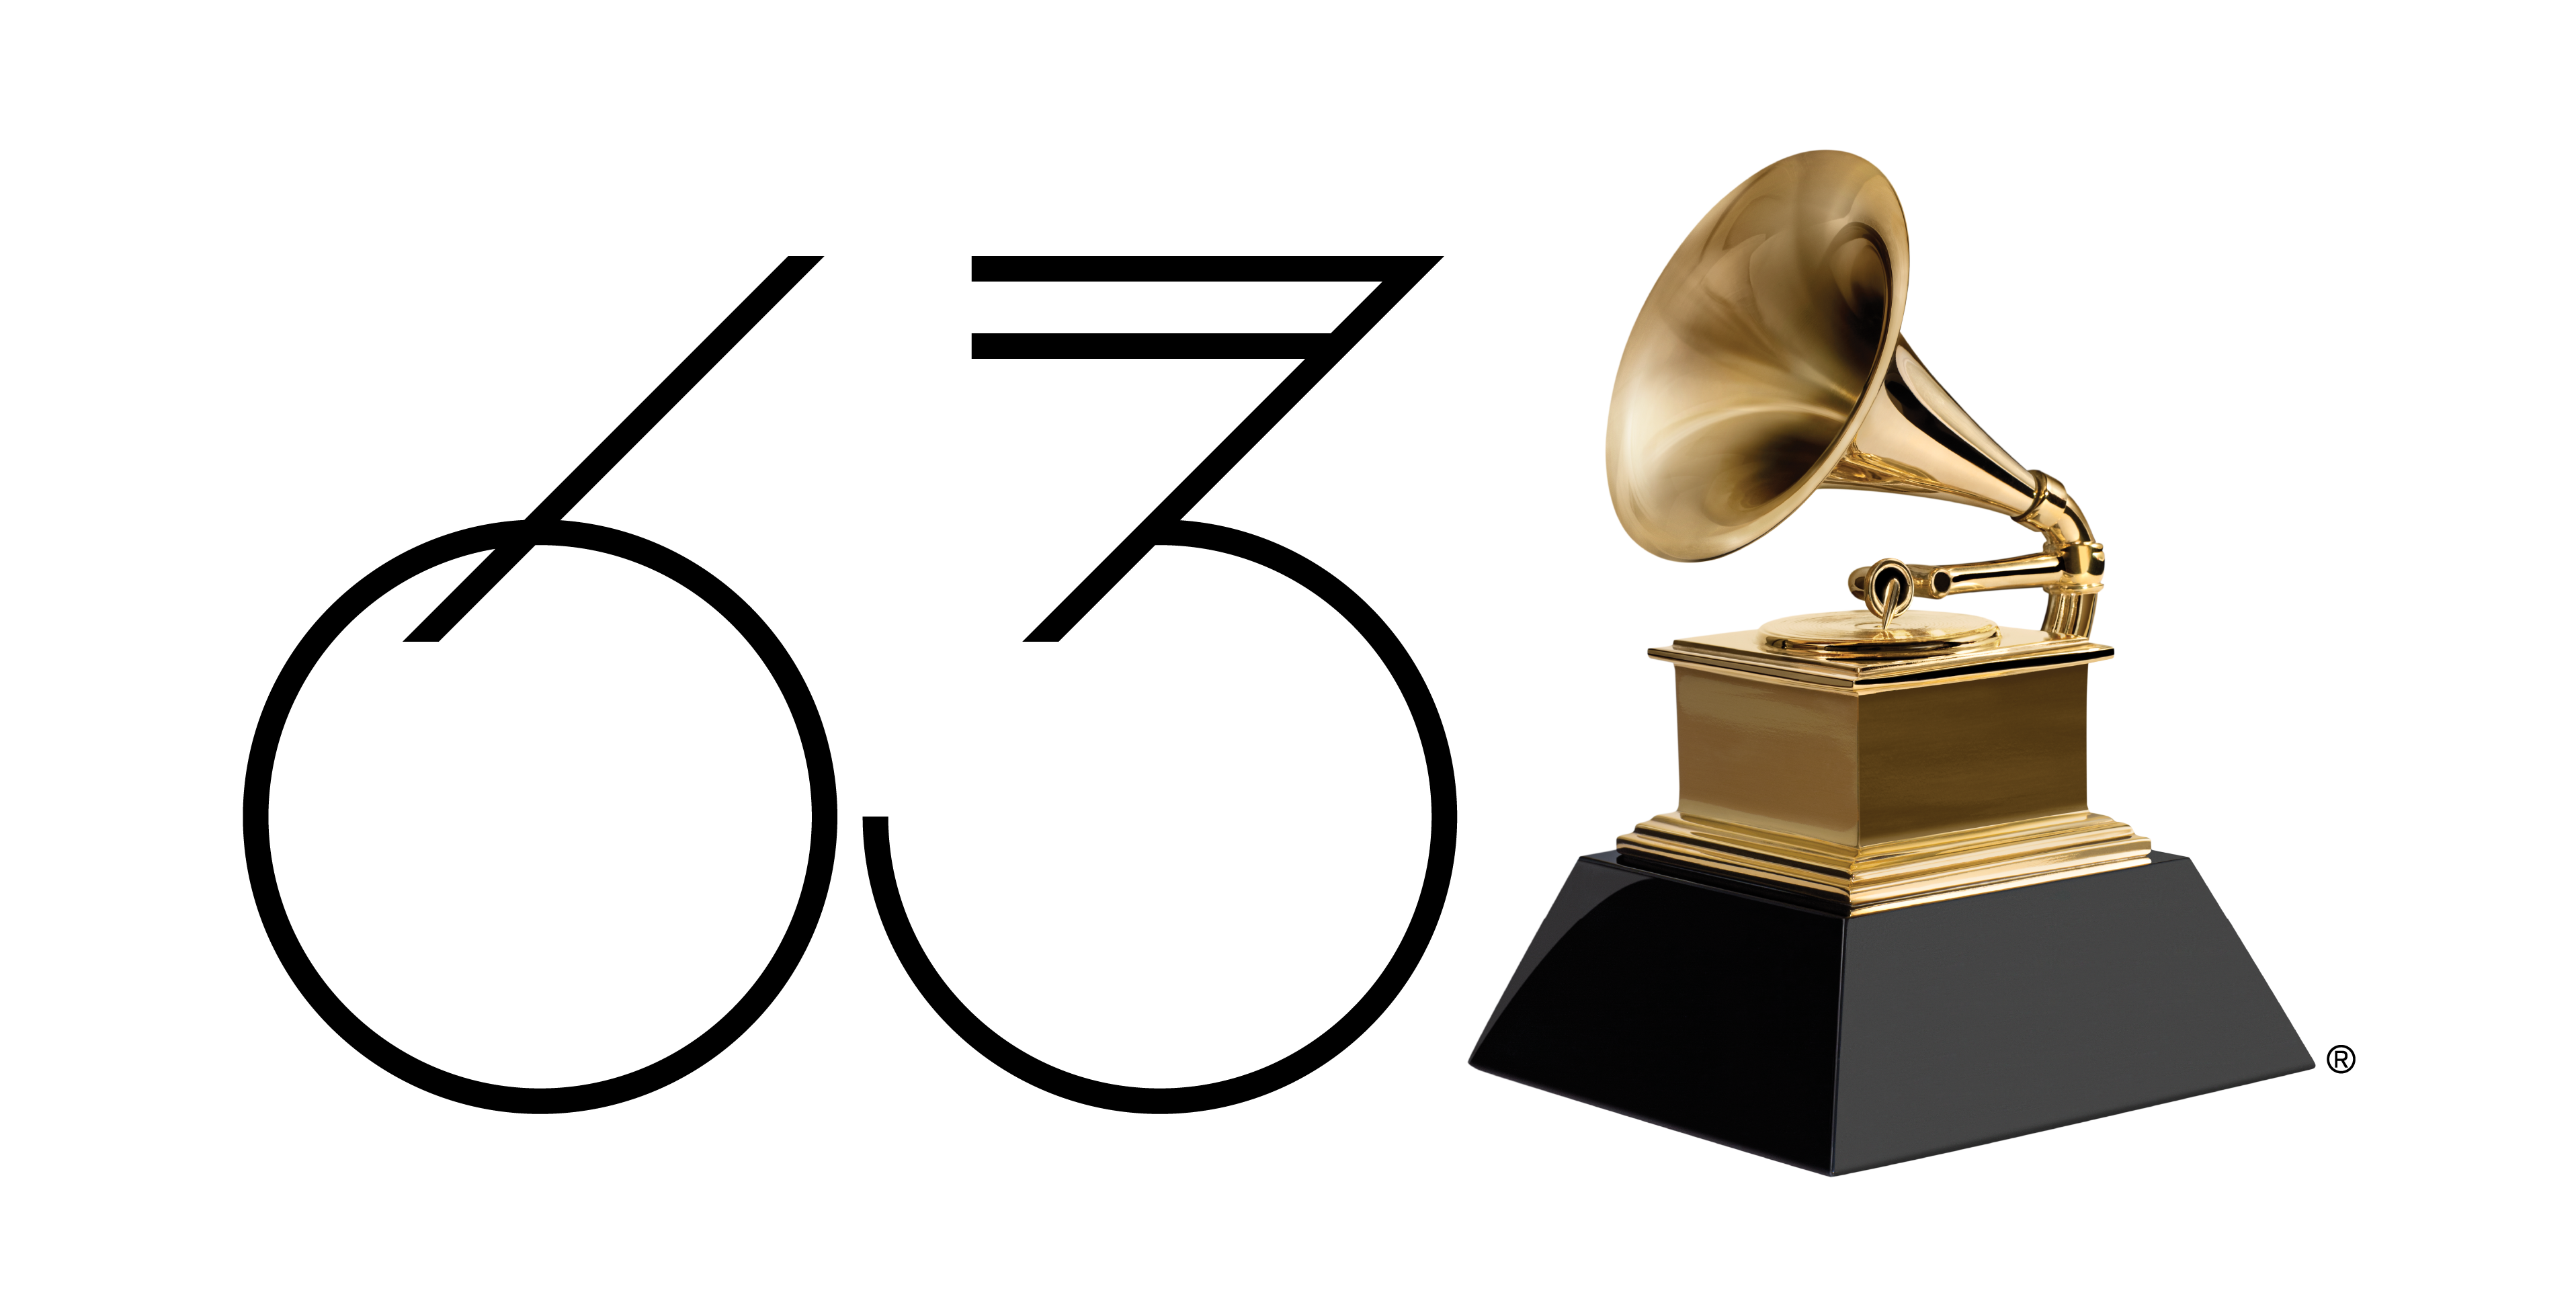 Grammy Awards Postponed Due To COVID-19